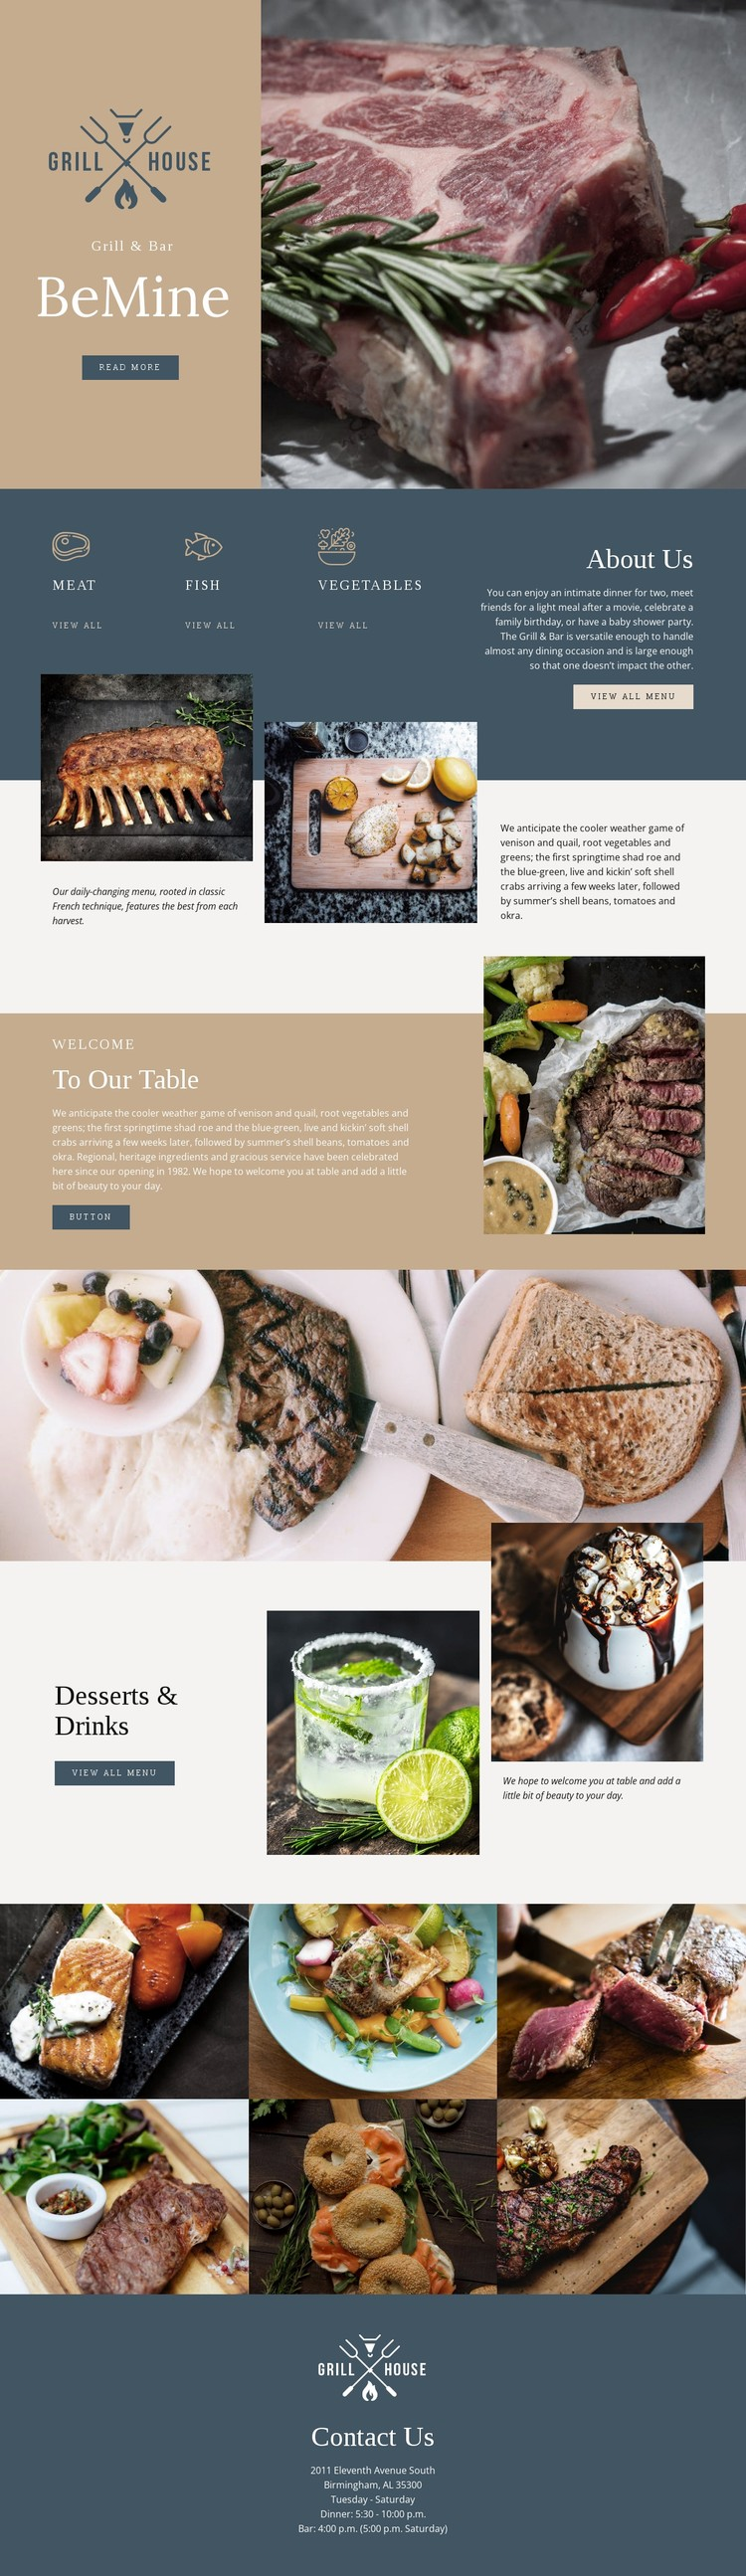 Finest grill house restaurant WordPress Template